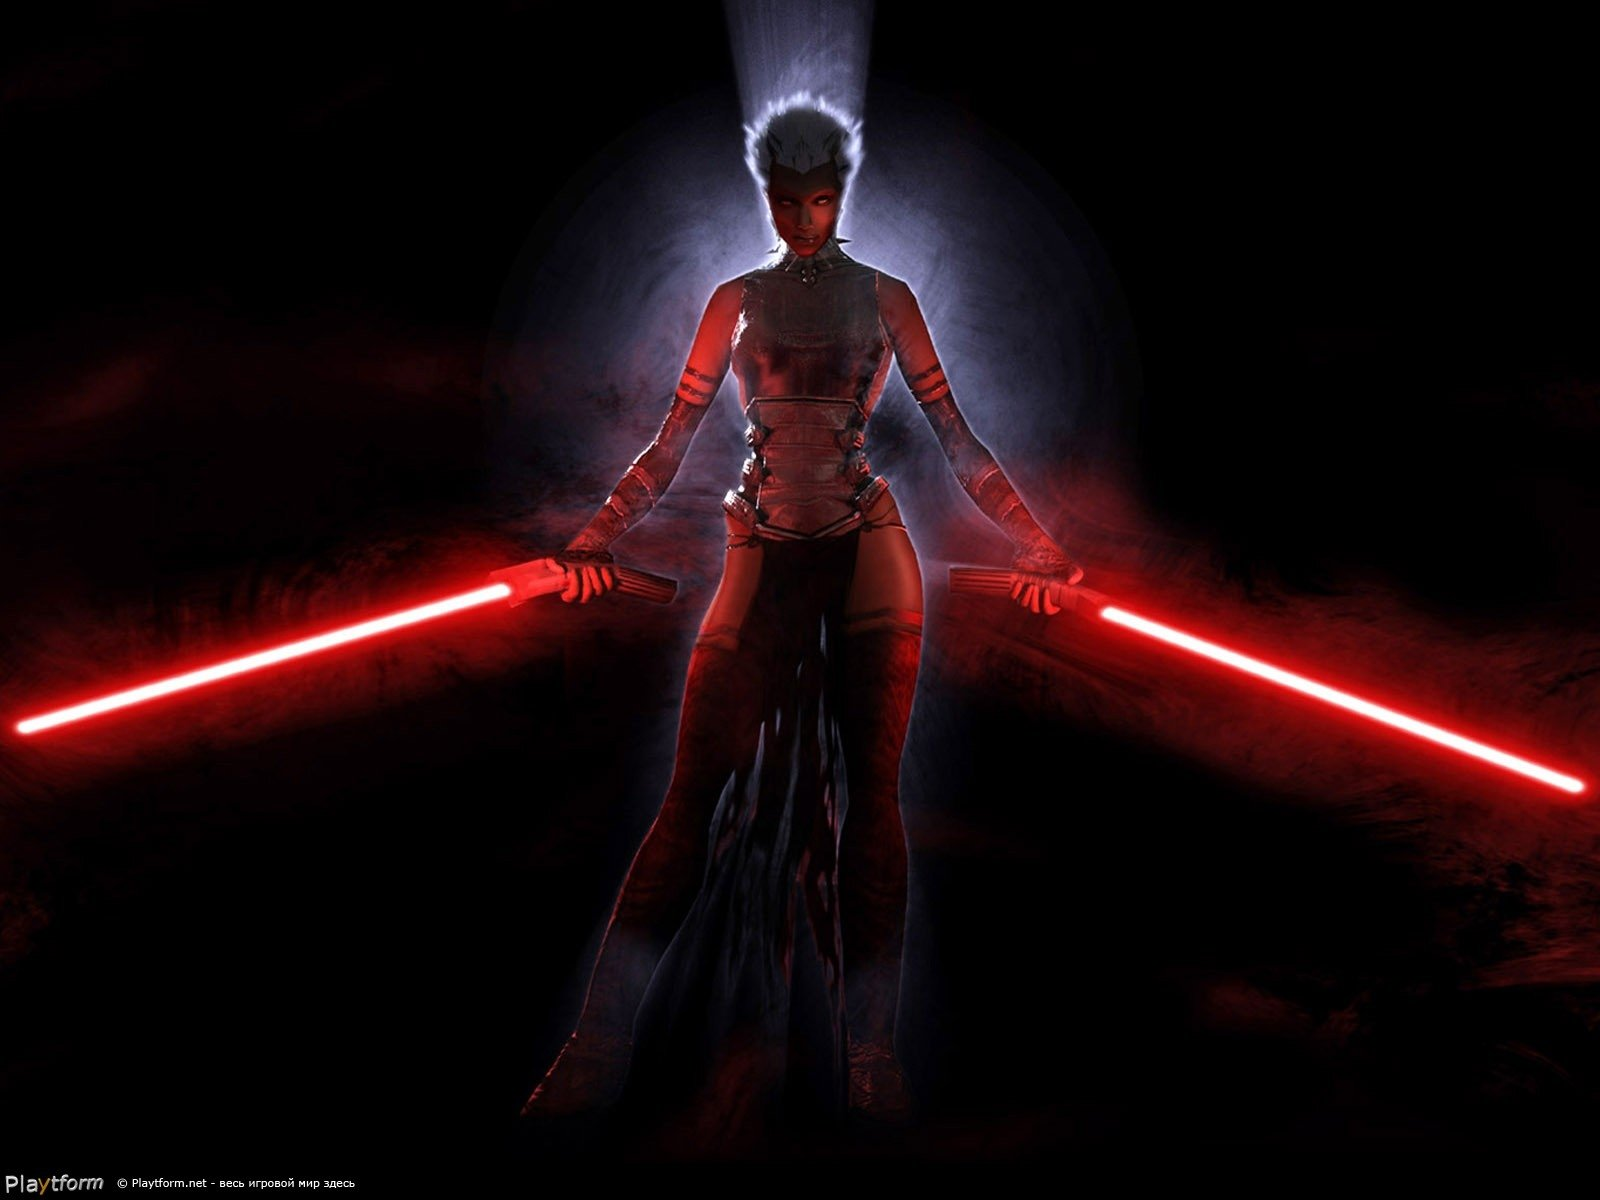 Sci Fi - Star Wars  Sith (Star Wars) Wallpaper